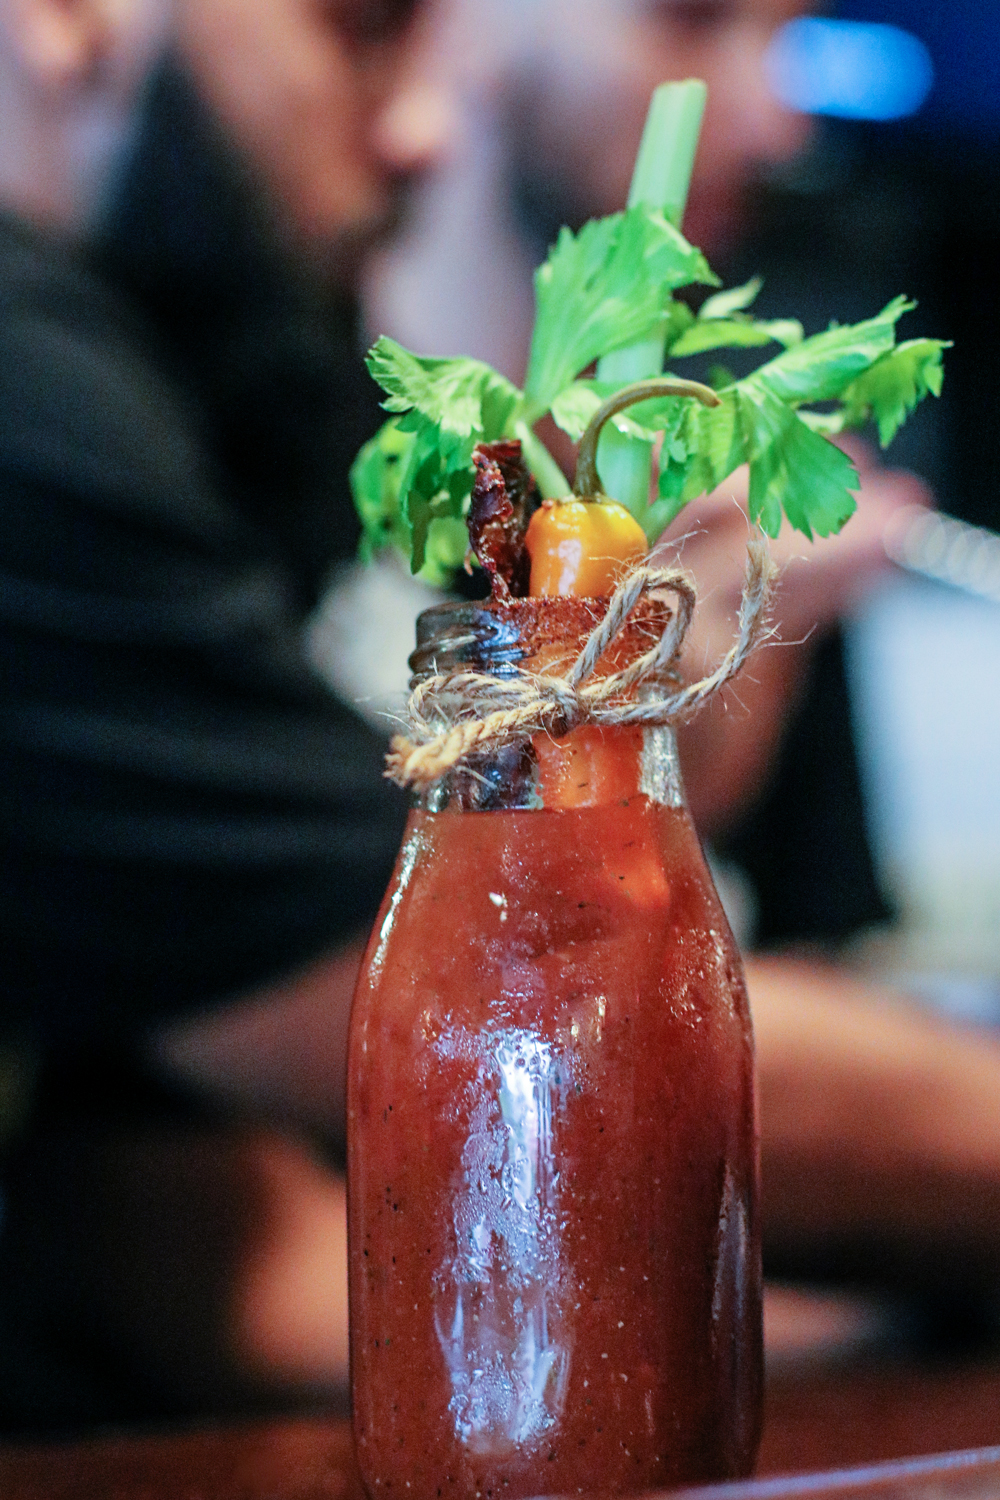 I love how they serve the Bloody Mary in a bottle at The Local Craft Food & Drink in Miami.